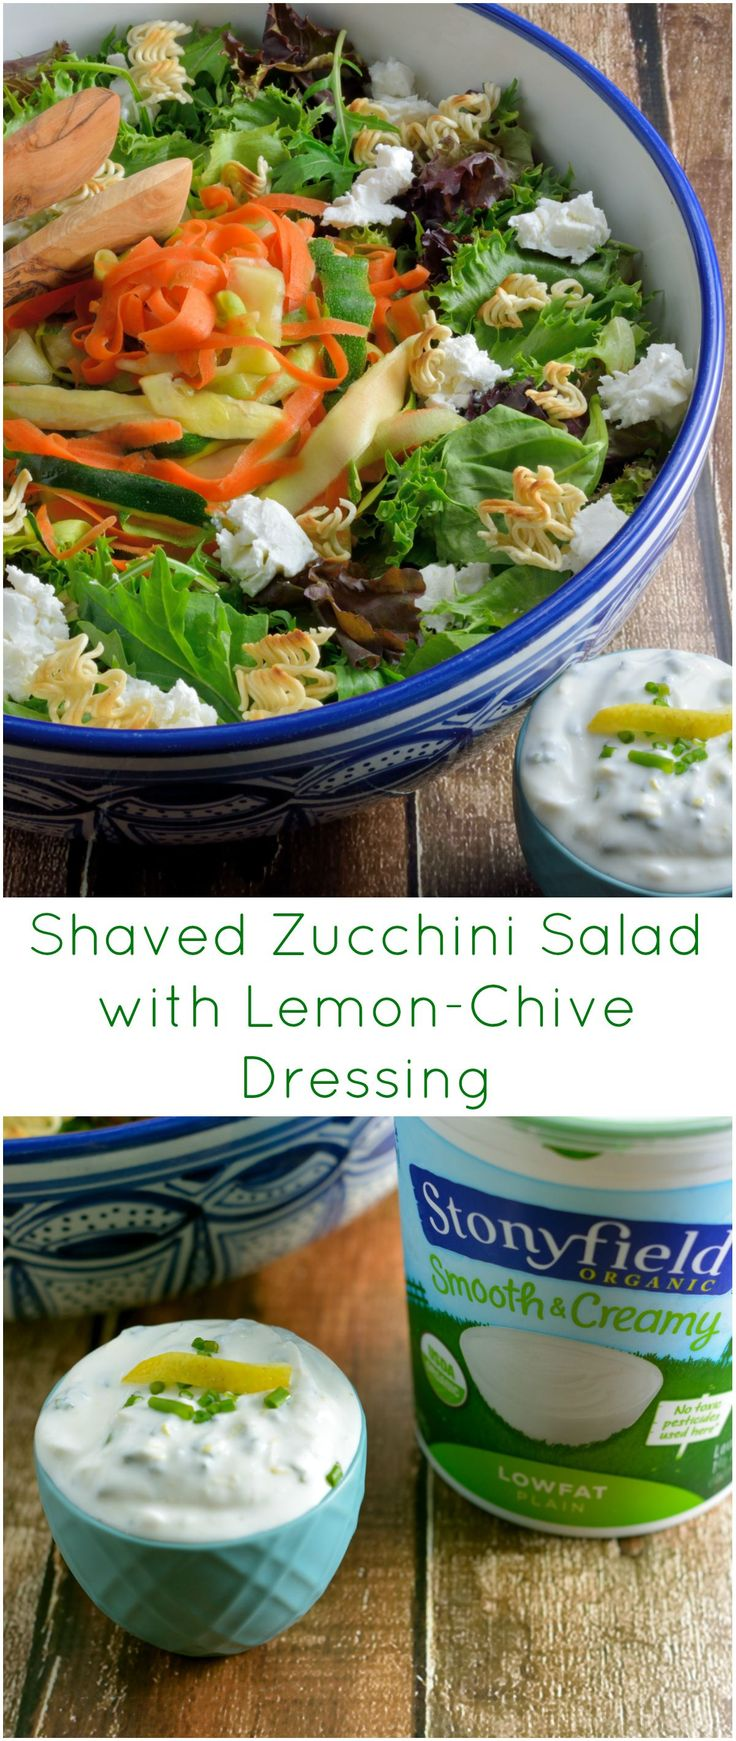 ... Salads on Pinterest | Zucchini squash, Dressing and Arugula salad